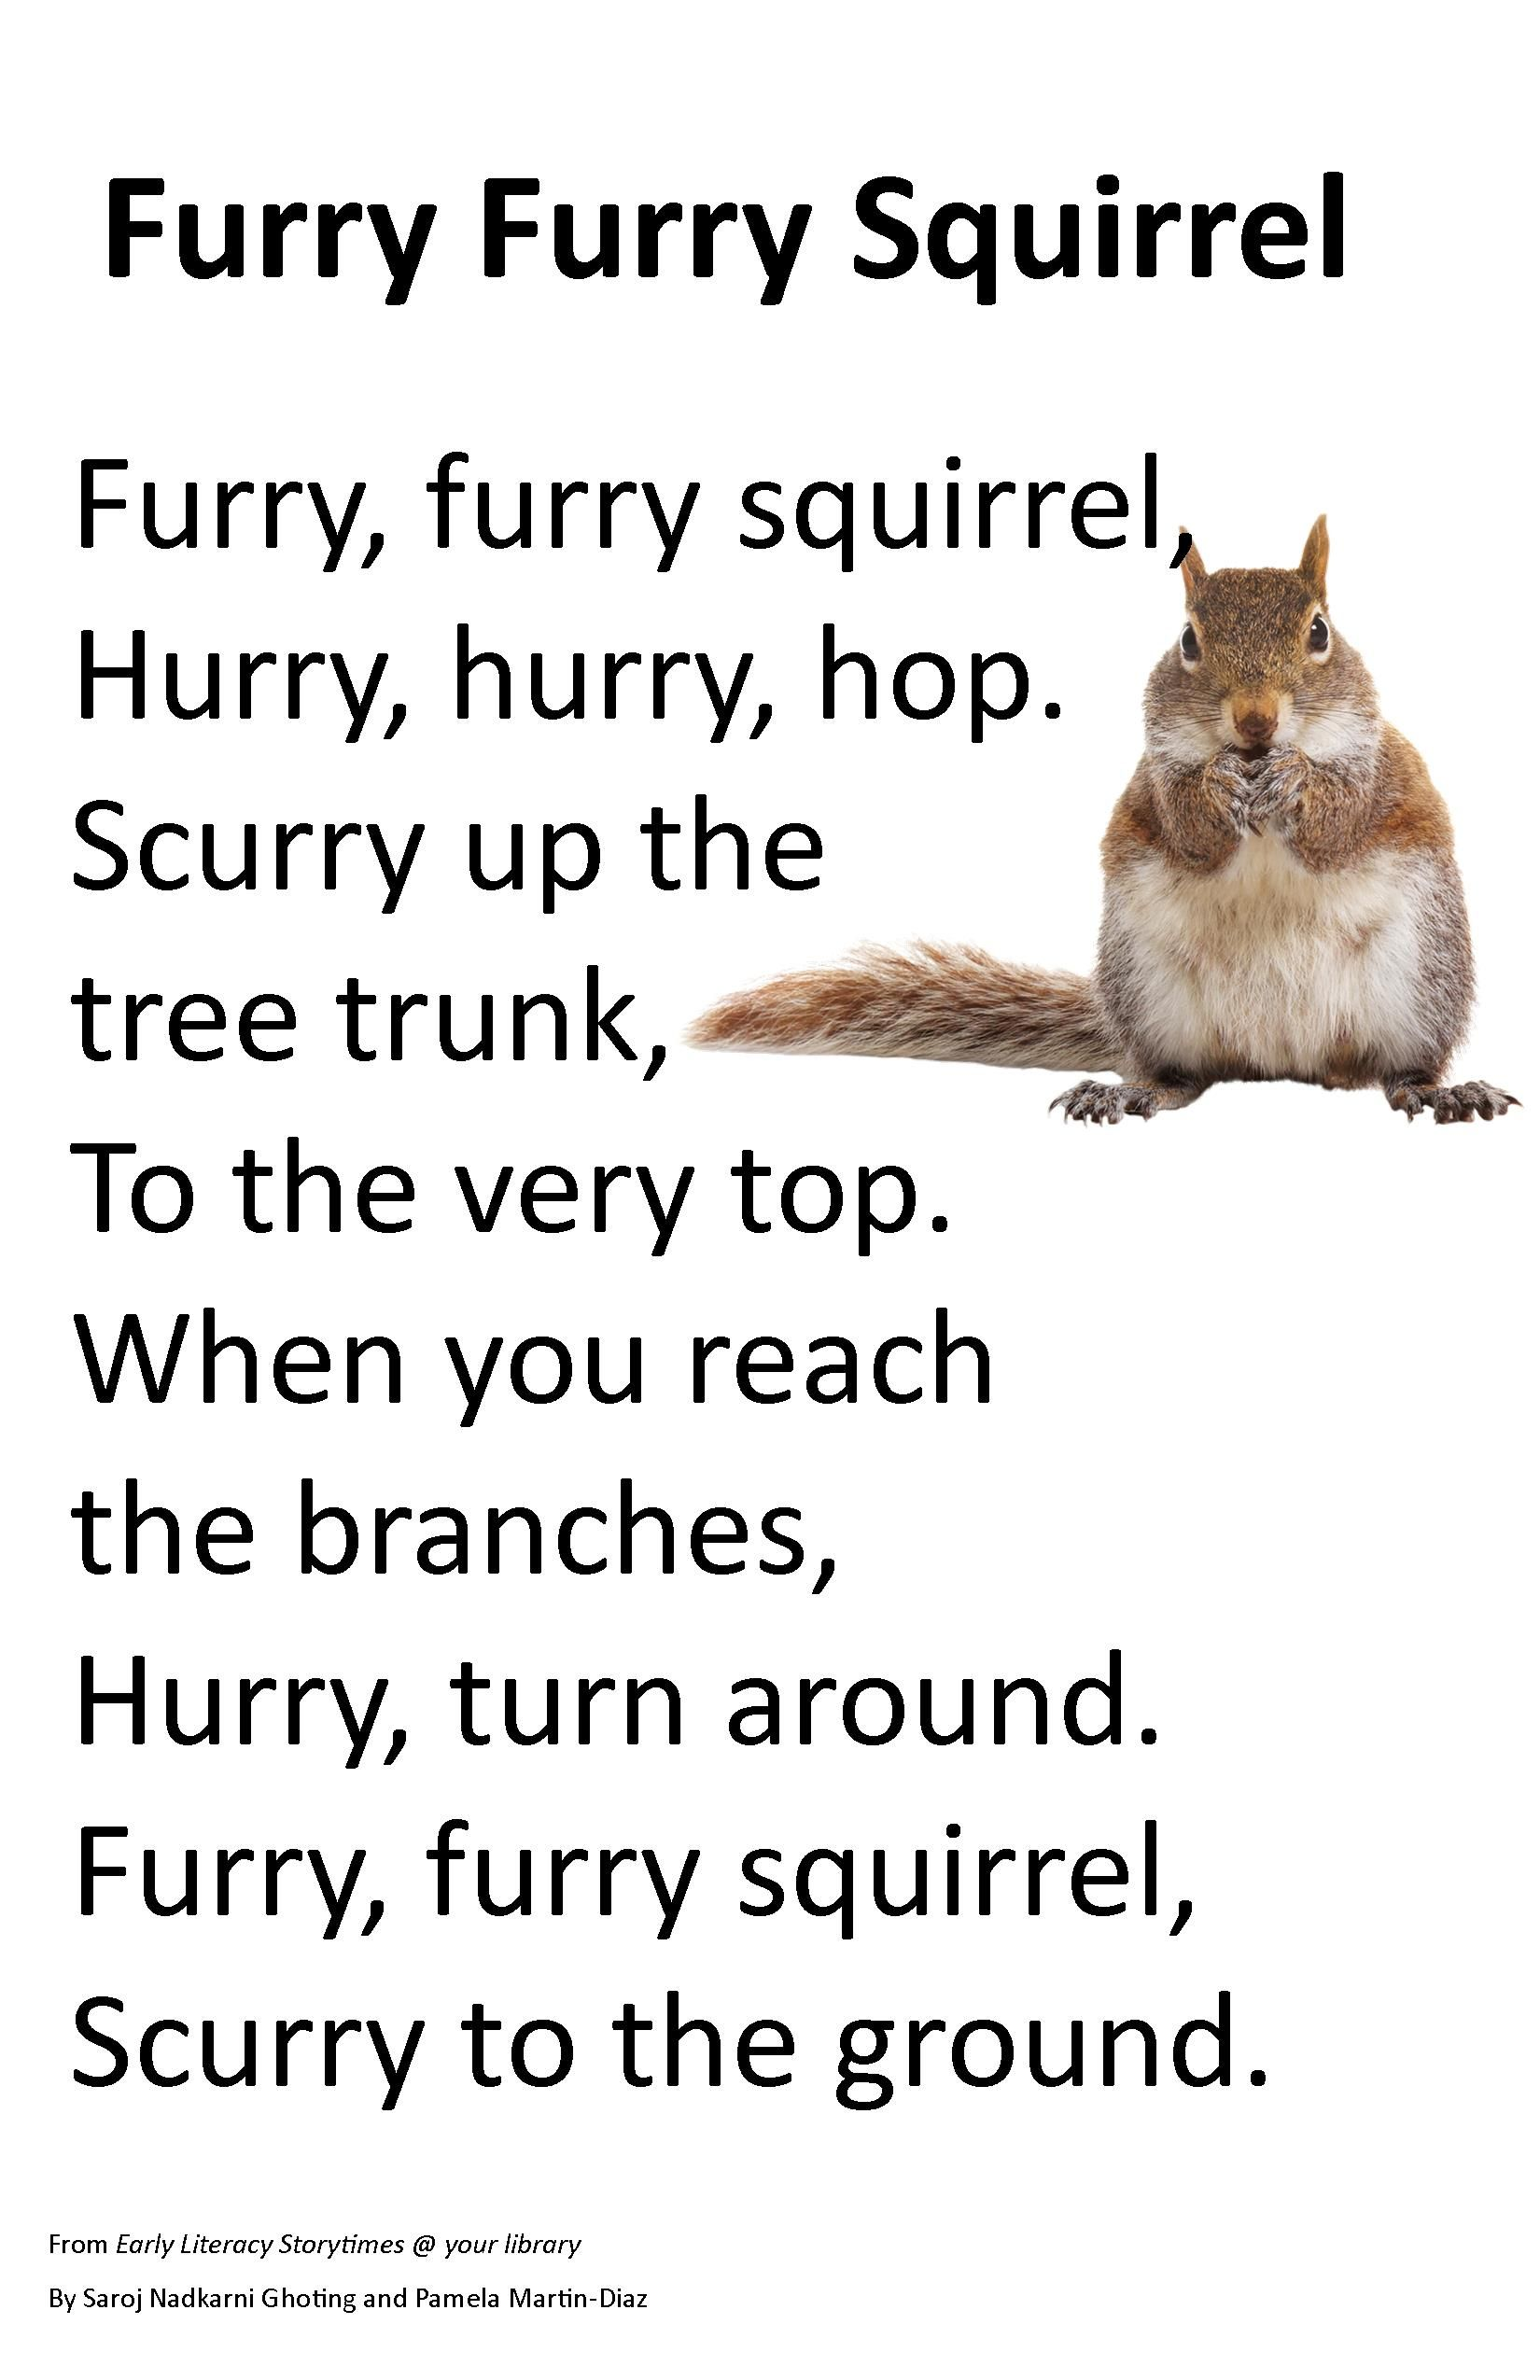 Itty Bitty Rhyme Furry Furry Squirrel